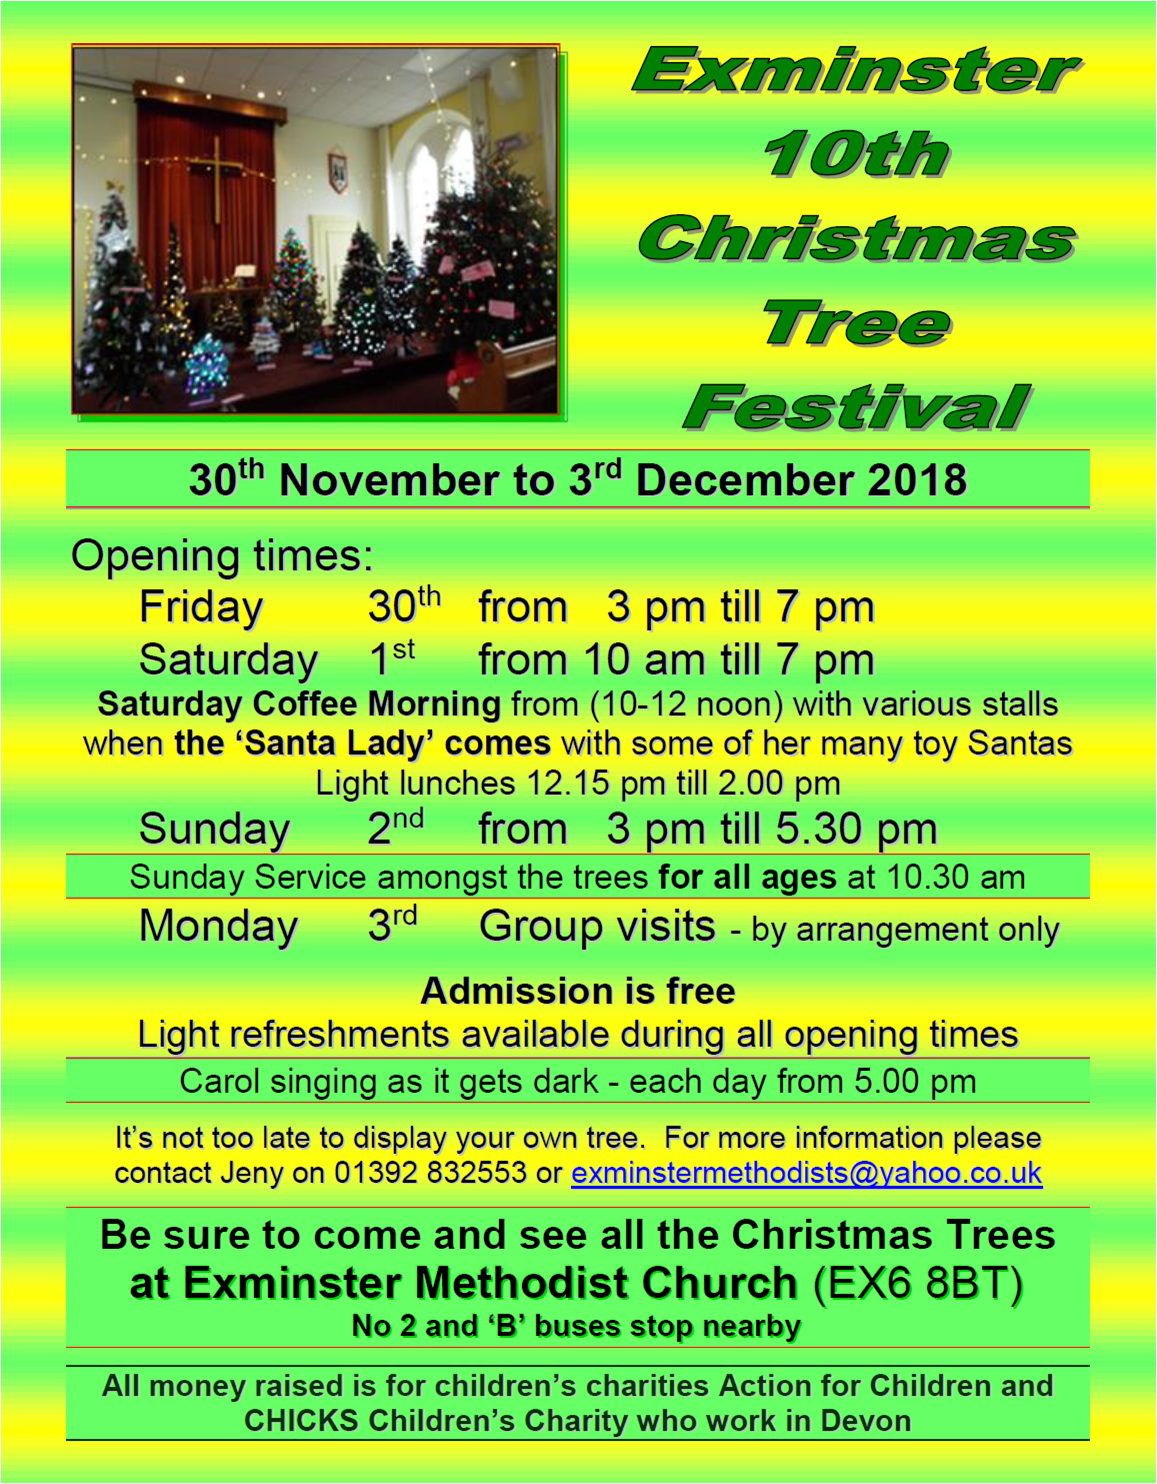 Exminster Christmas Tree Festival @ Exminster Methodist Church